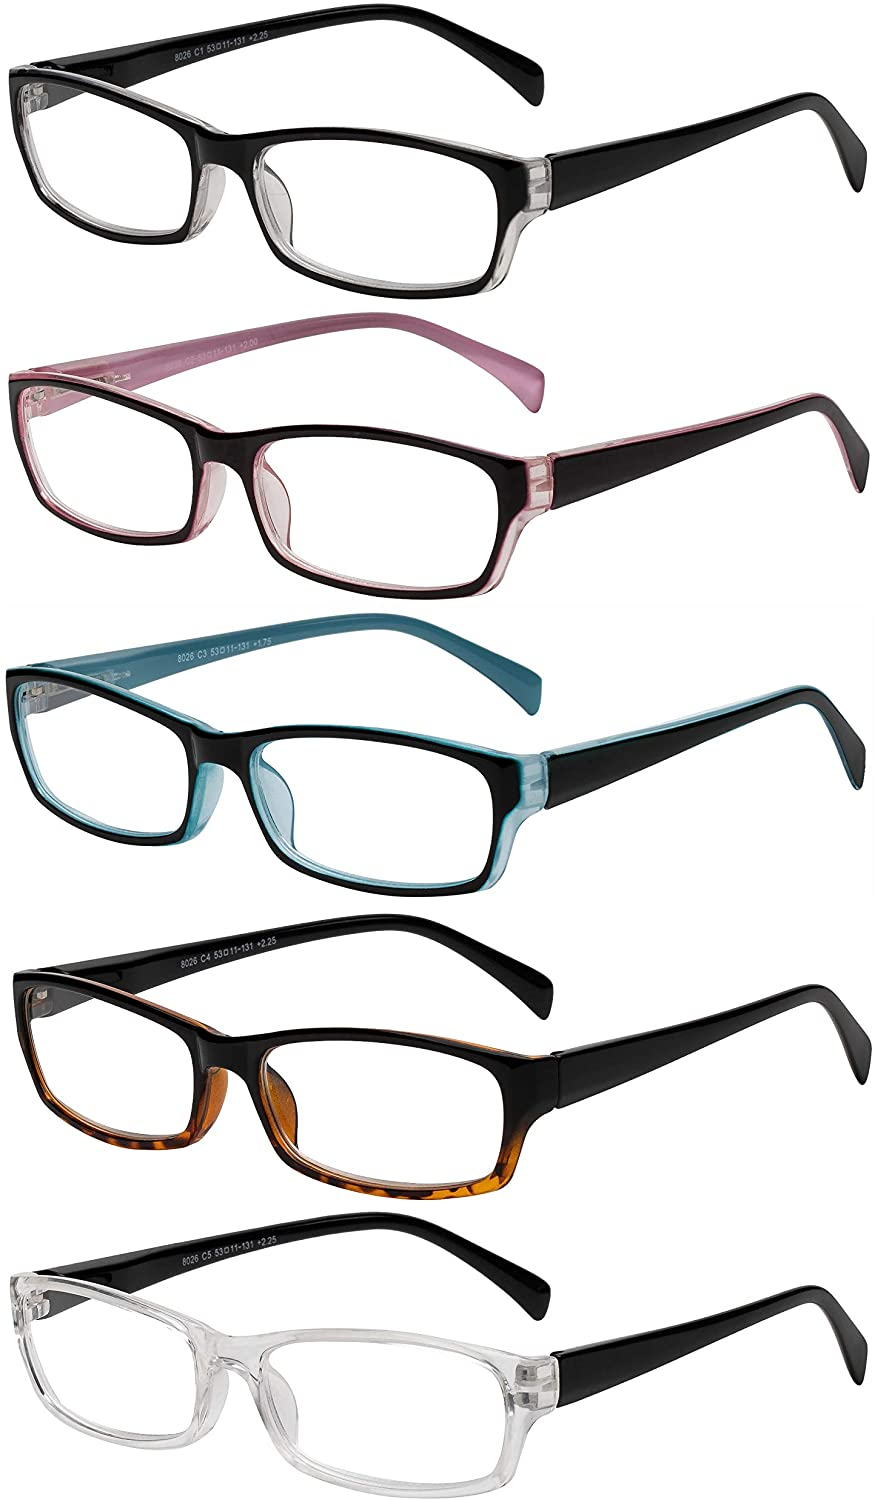 Reading Glasses 5 Pairs Fashion Ladies Quality Designed Spring Hinge Readers for Women